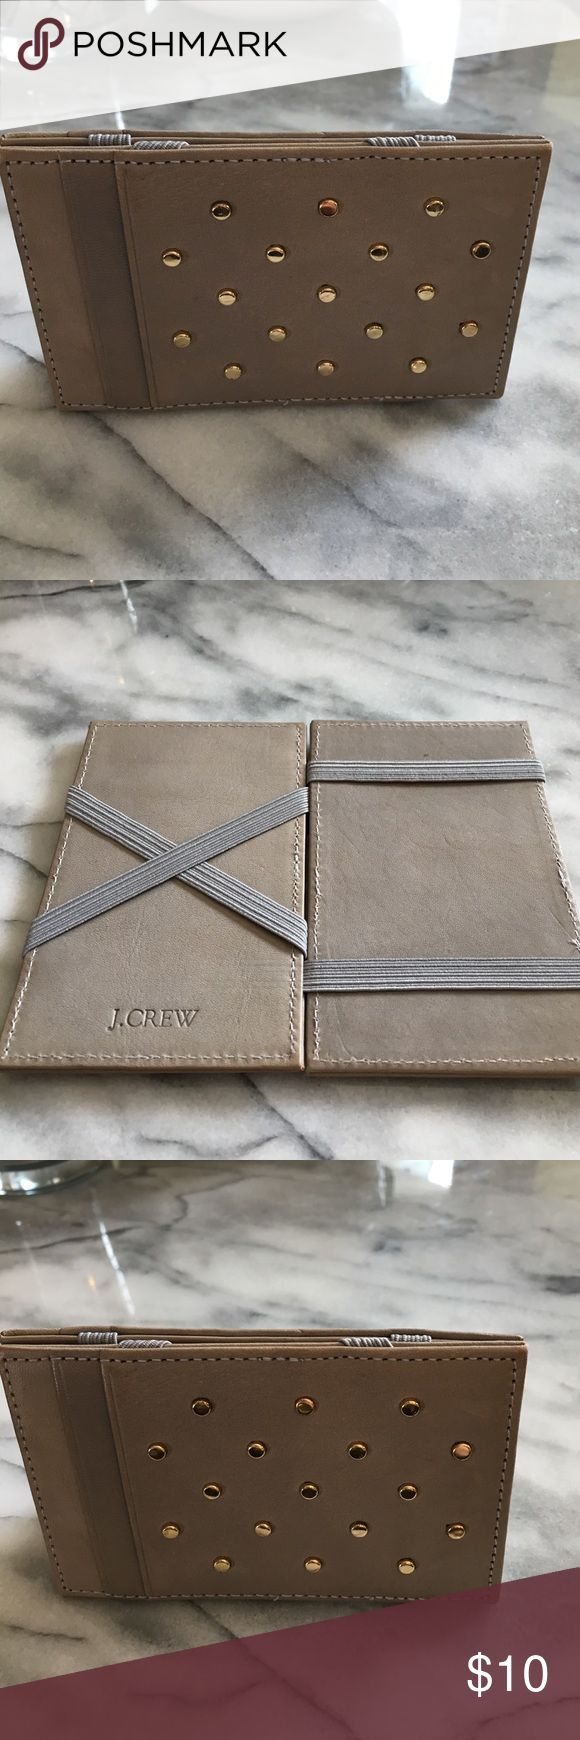 J Crew leather gold studs magic wallet J. Crew leather gold stud magic wallet gently used J. Crew Bags Wallets